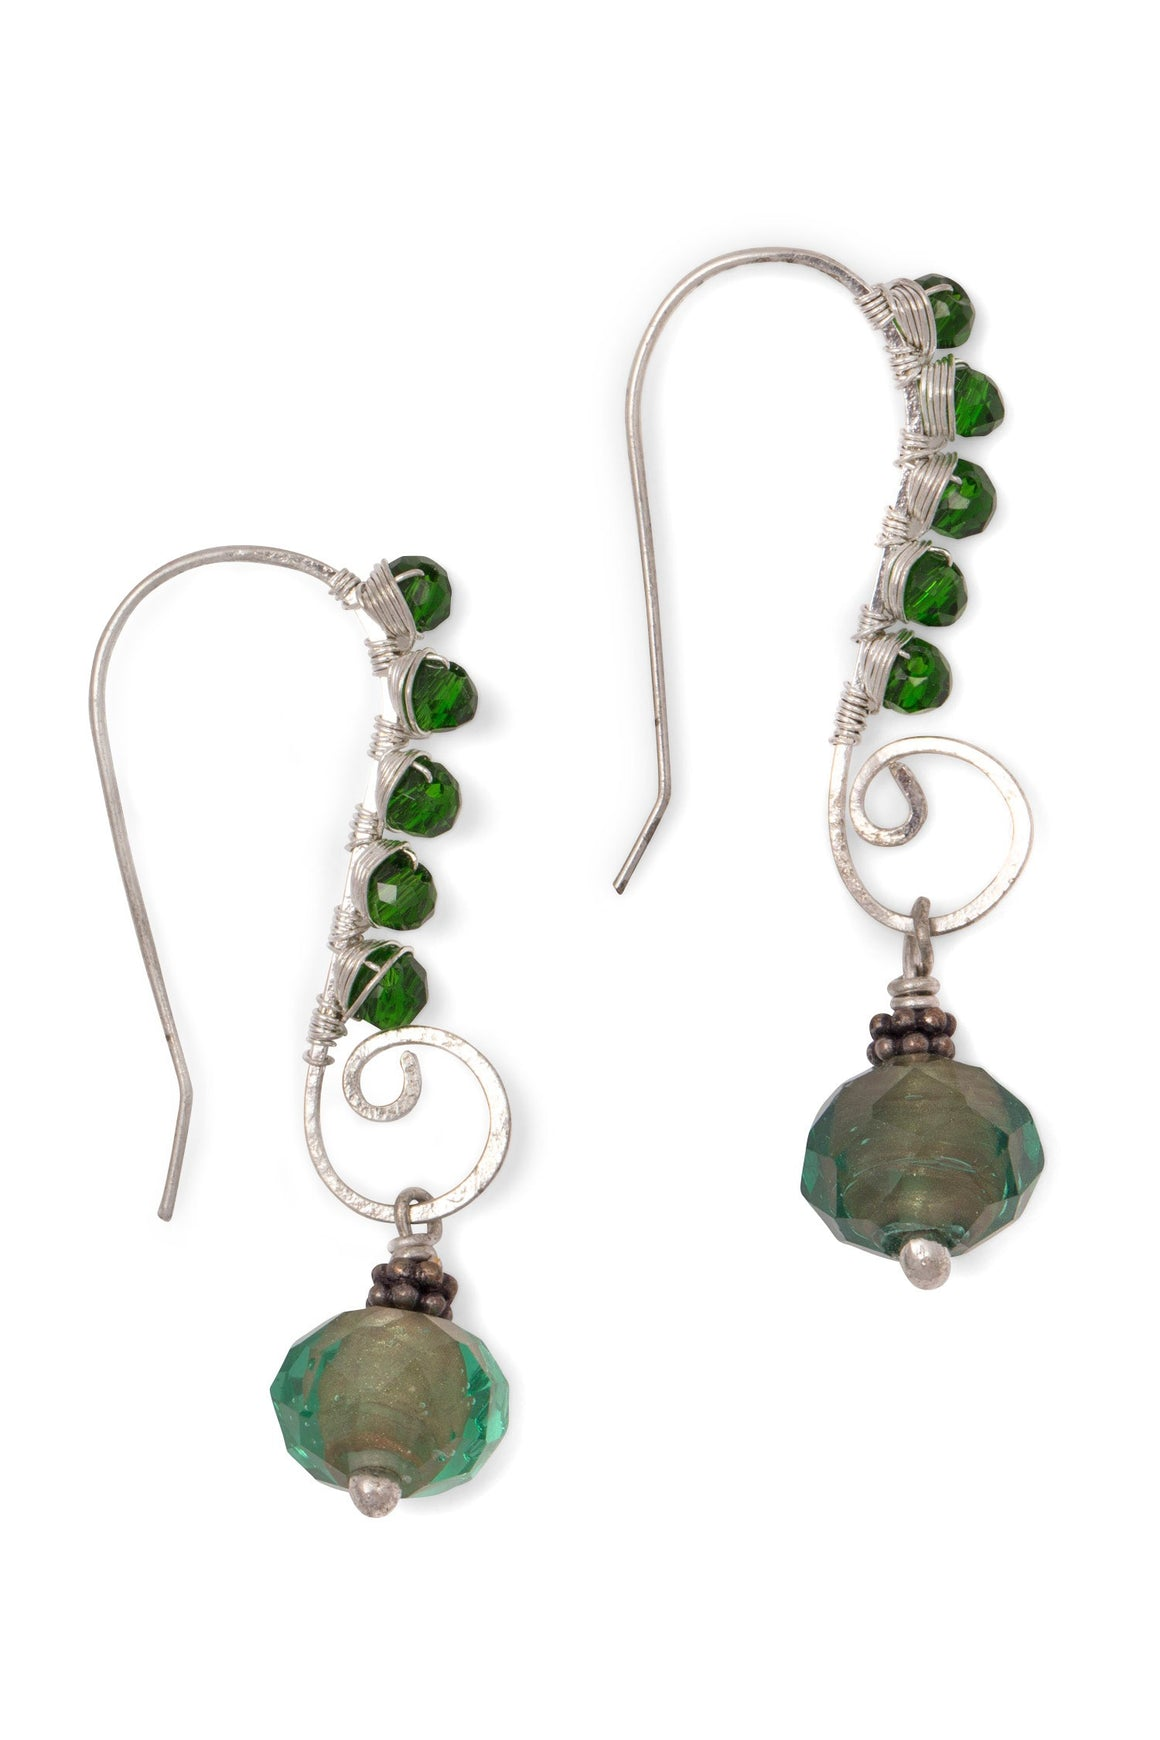 Green Galaxy Earrings Handcrafted in India